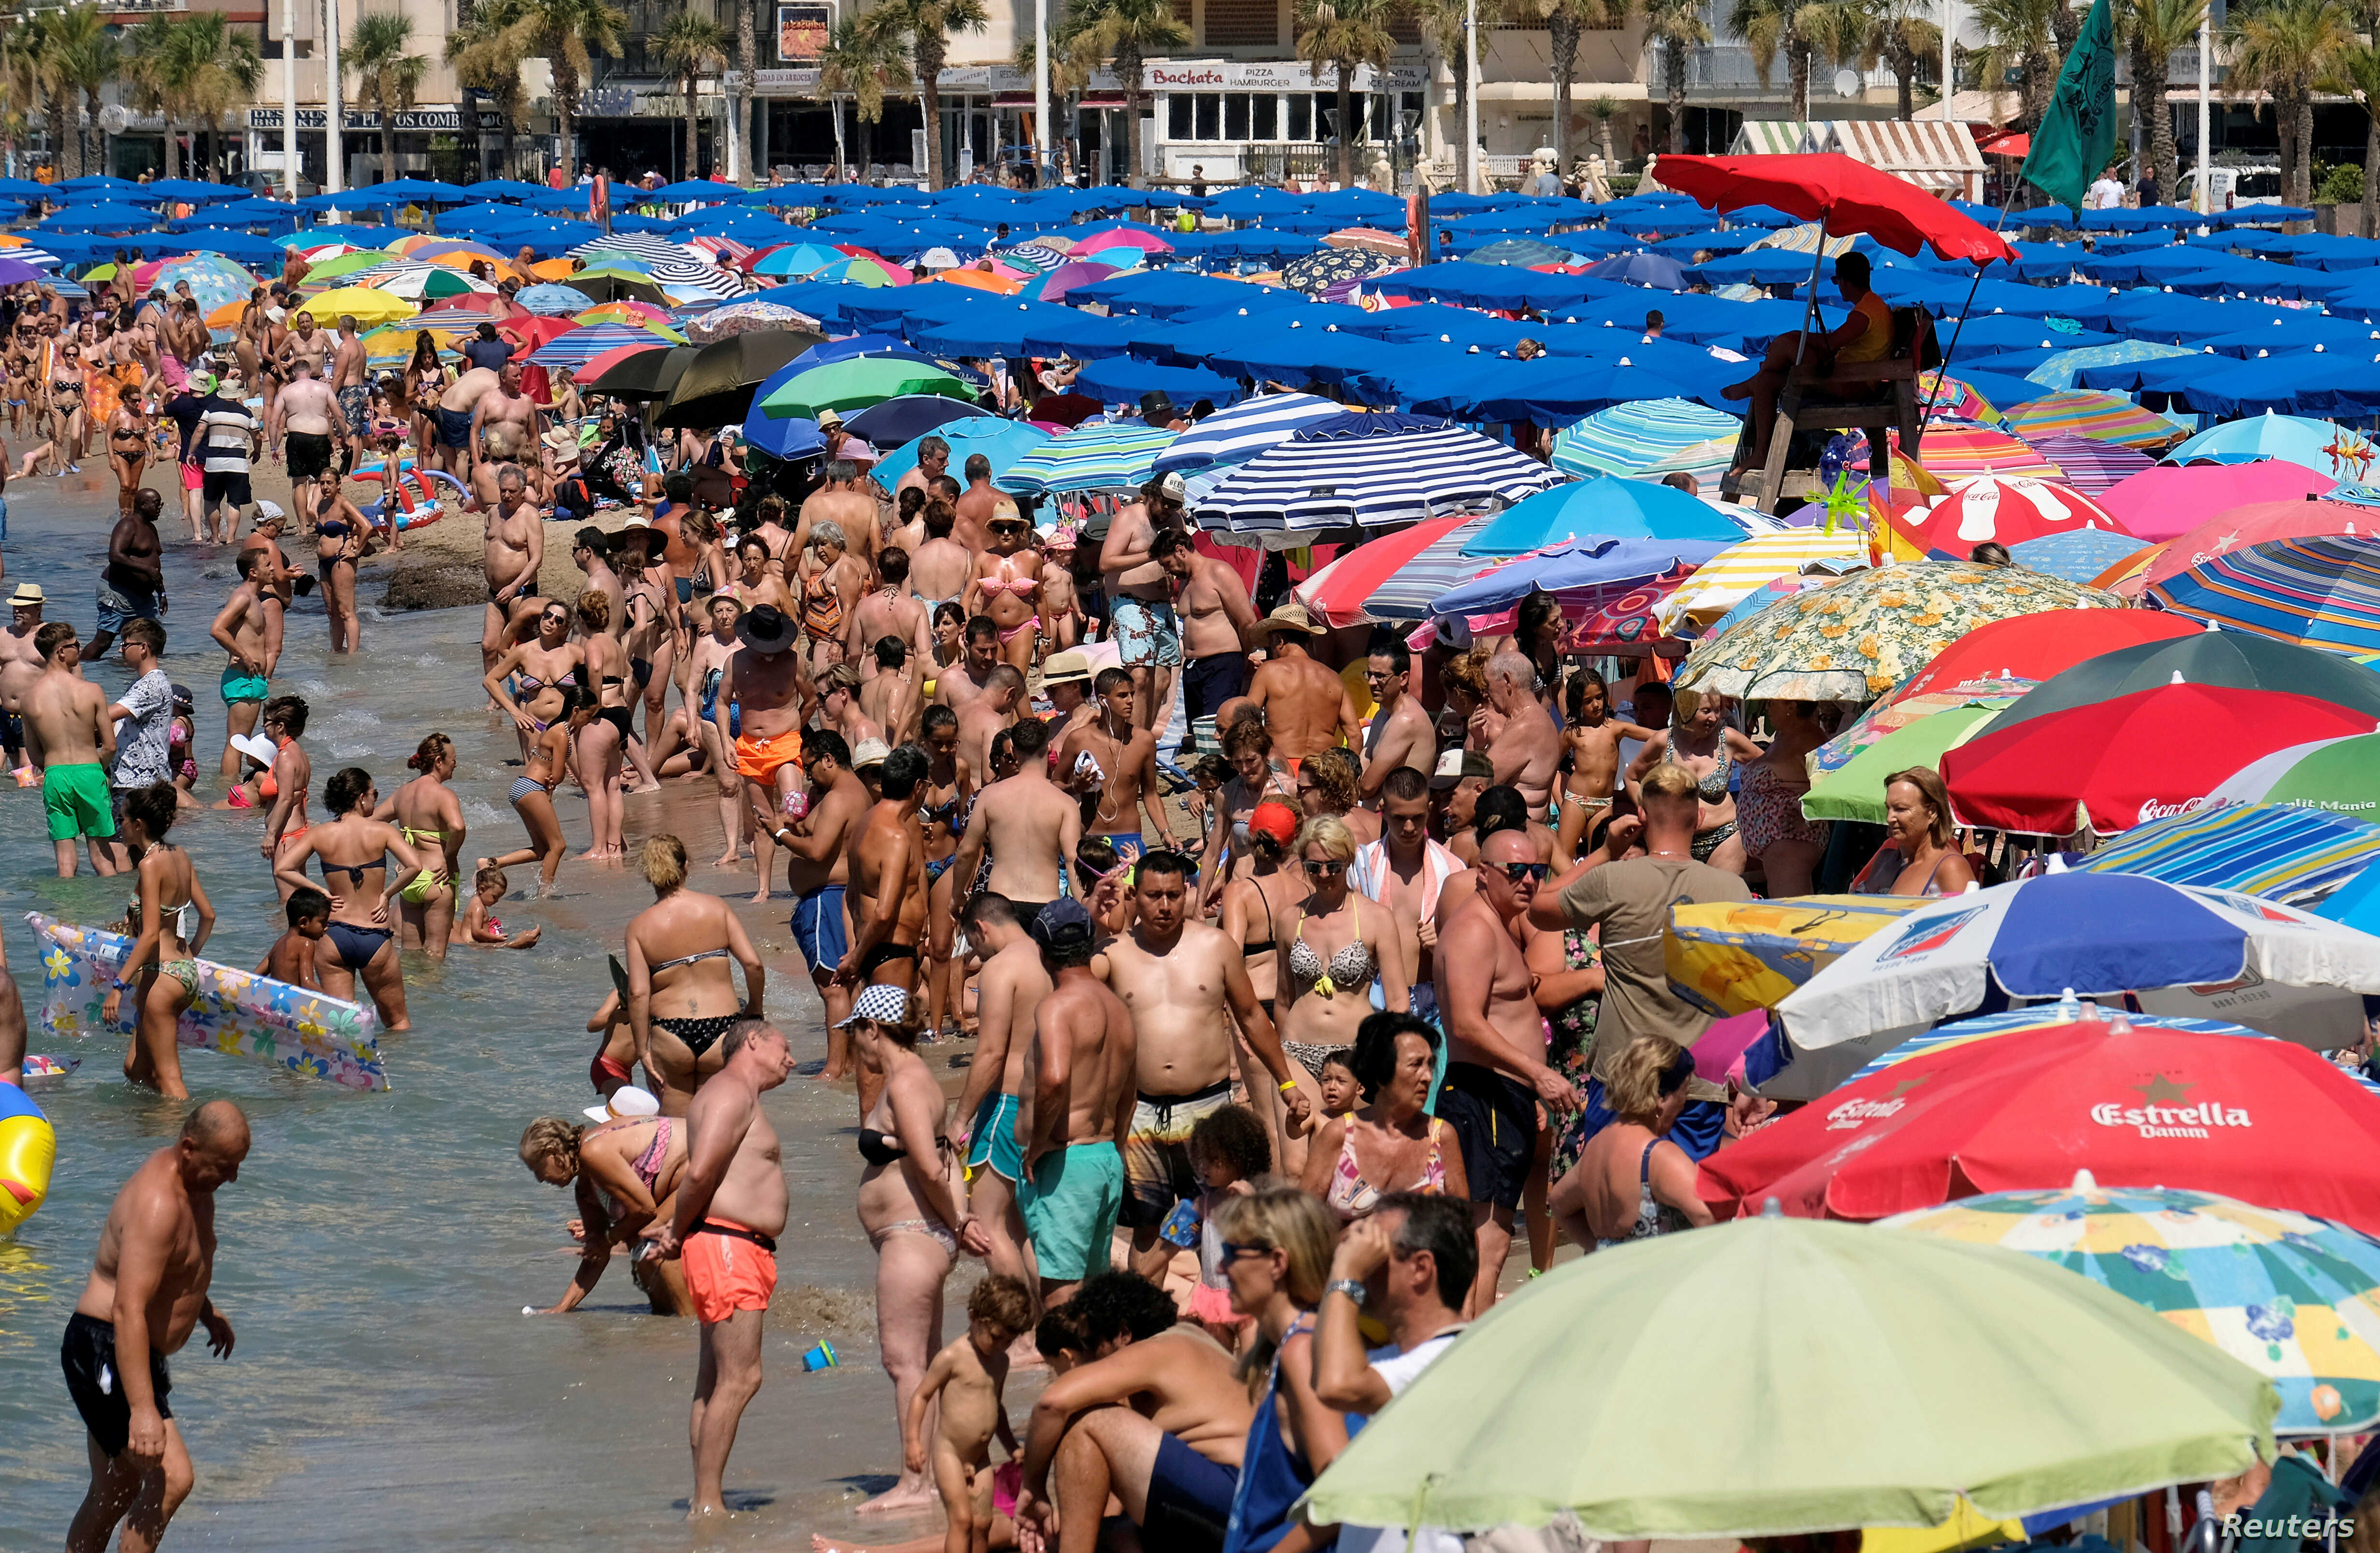 Spain Looks To A New Kind Of Tourism After Covid 19 Voice Of America English